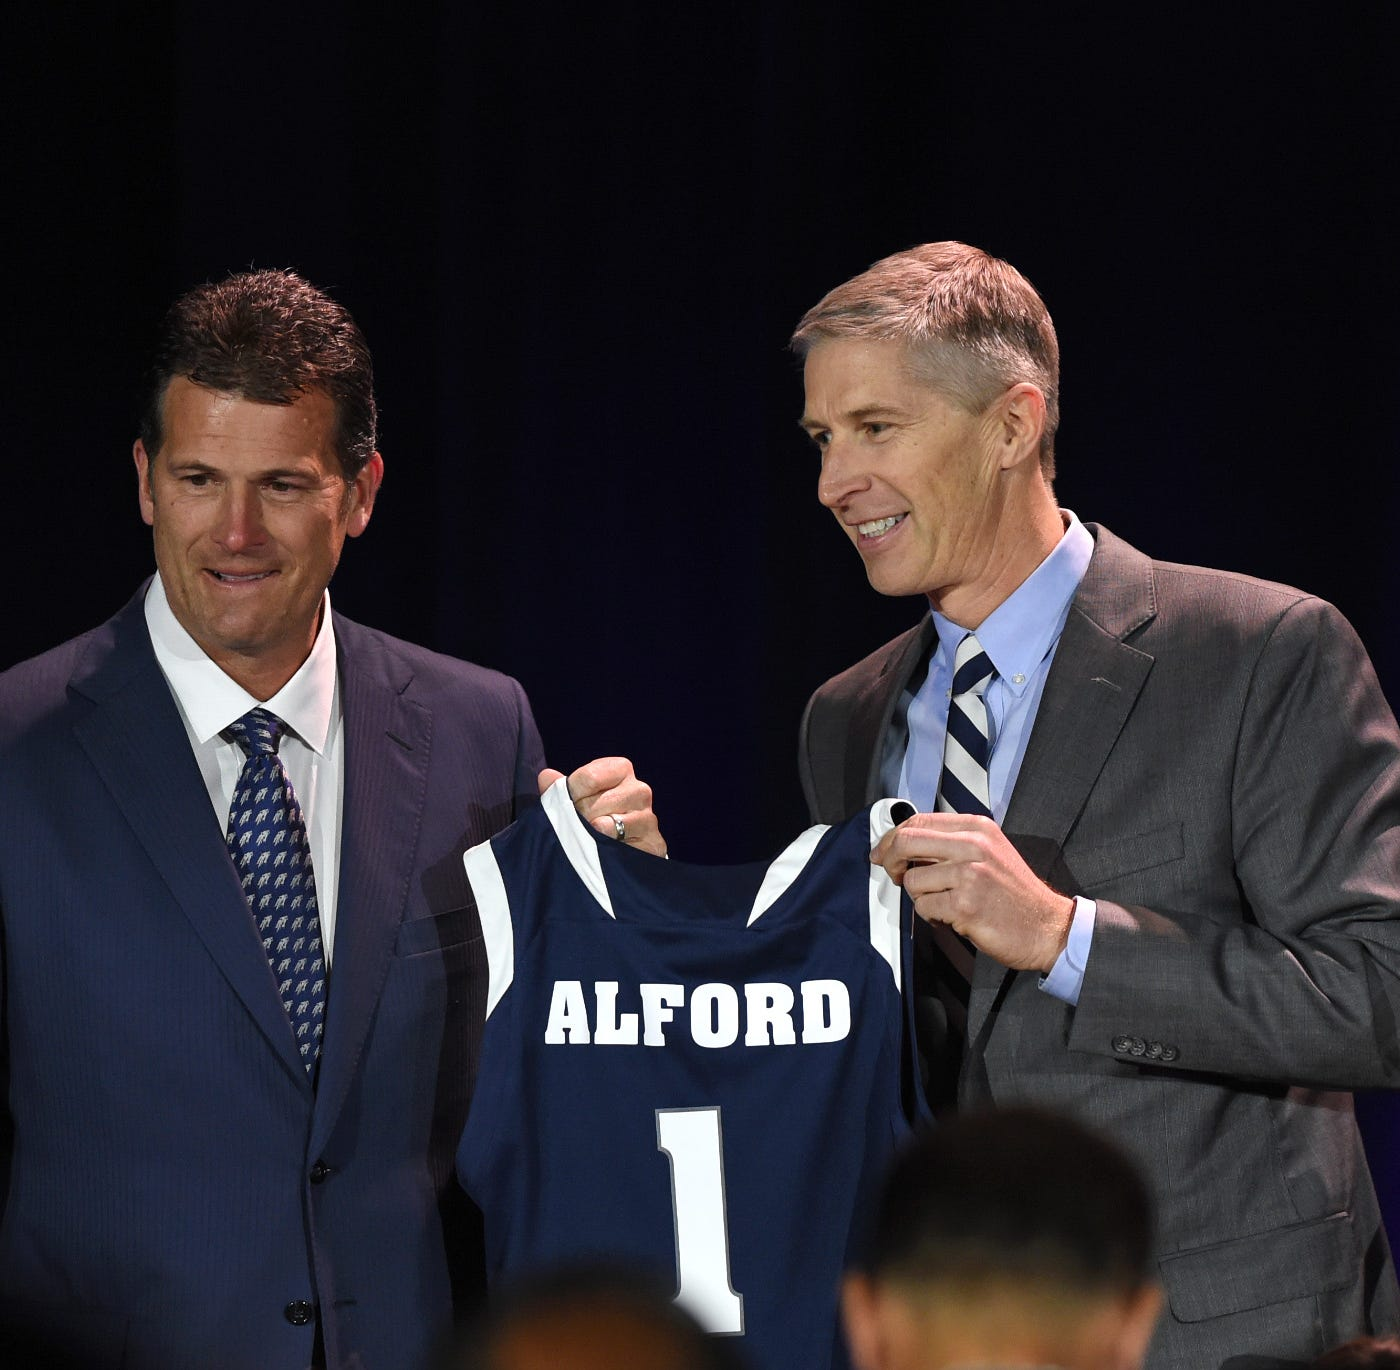 WATCH LIVE: Steve Alford announced as 19th coach in Nevada Wolf Pack basketball history